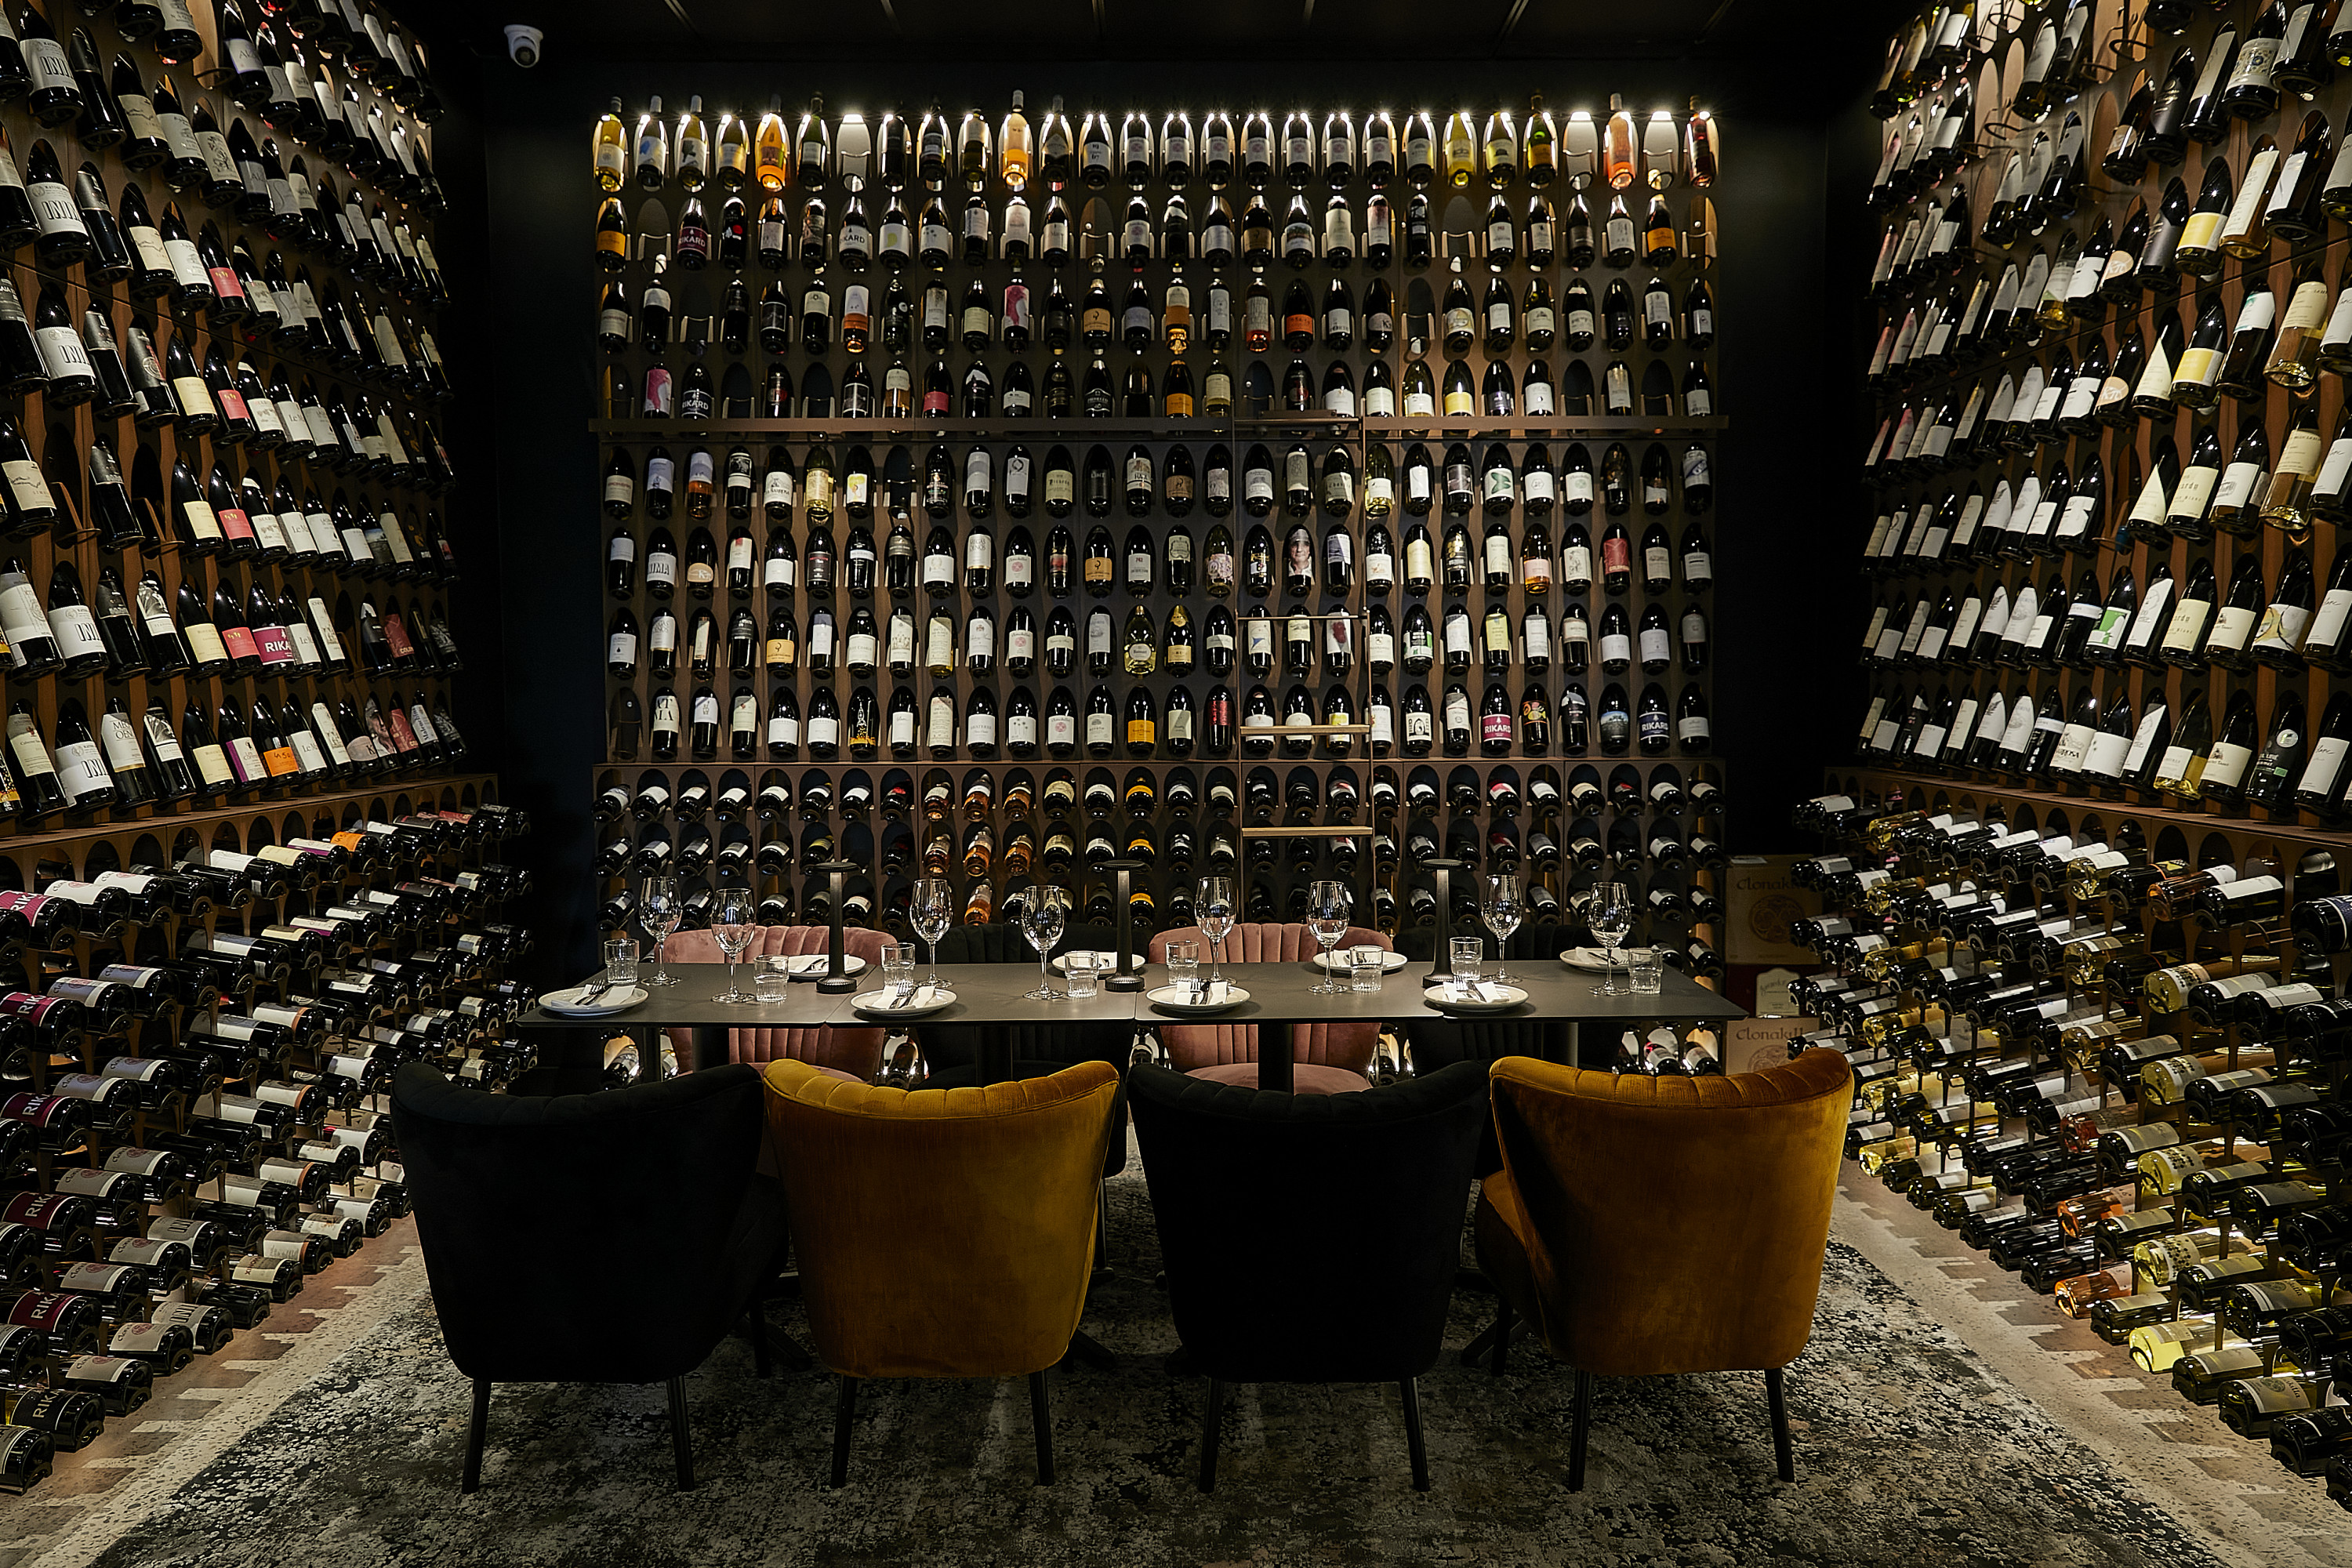 a wall stacked with wine bottles